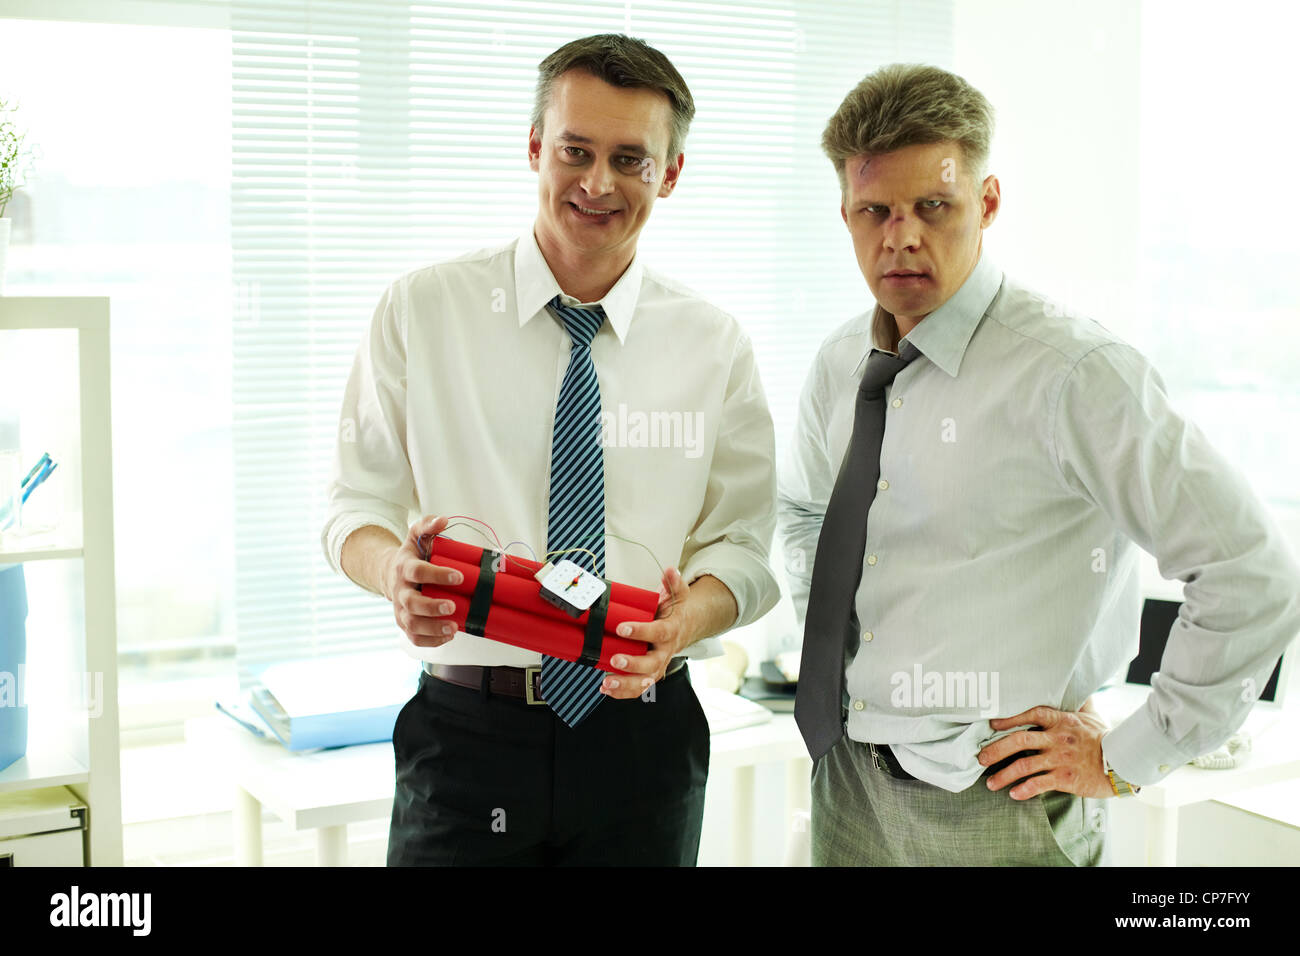 Portrait of two businessmen with bruised faces looking at camera, one of them holding bomb - Stock Image